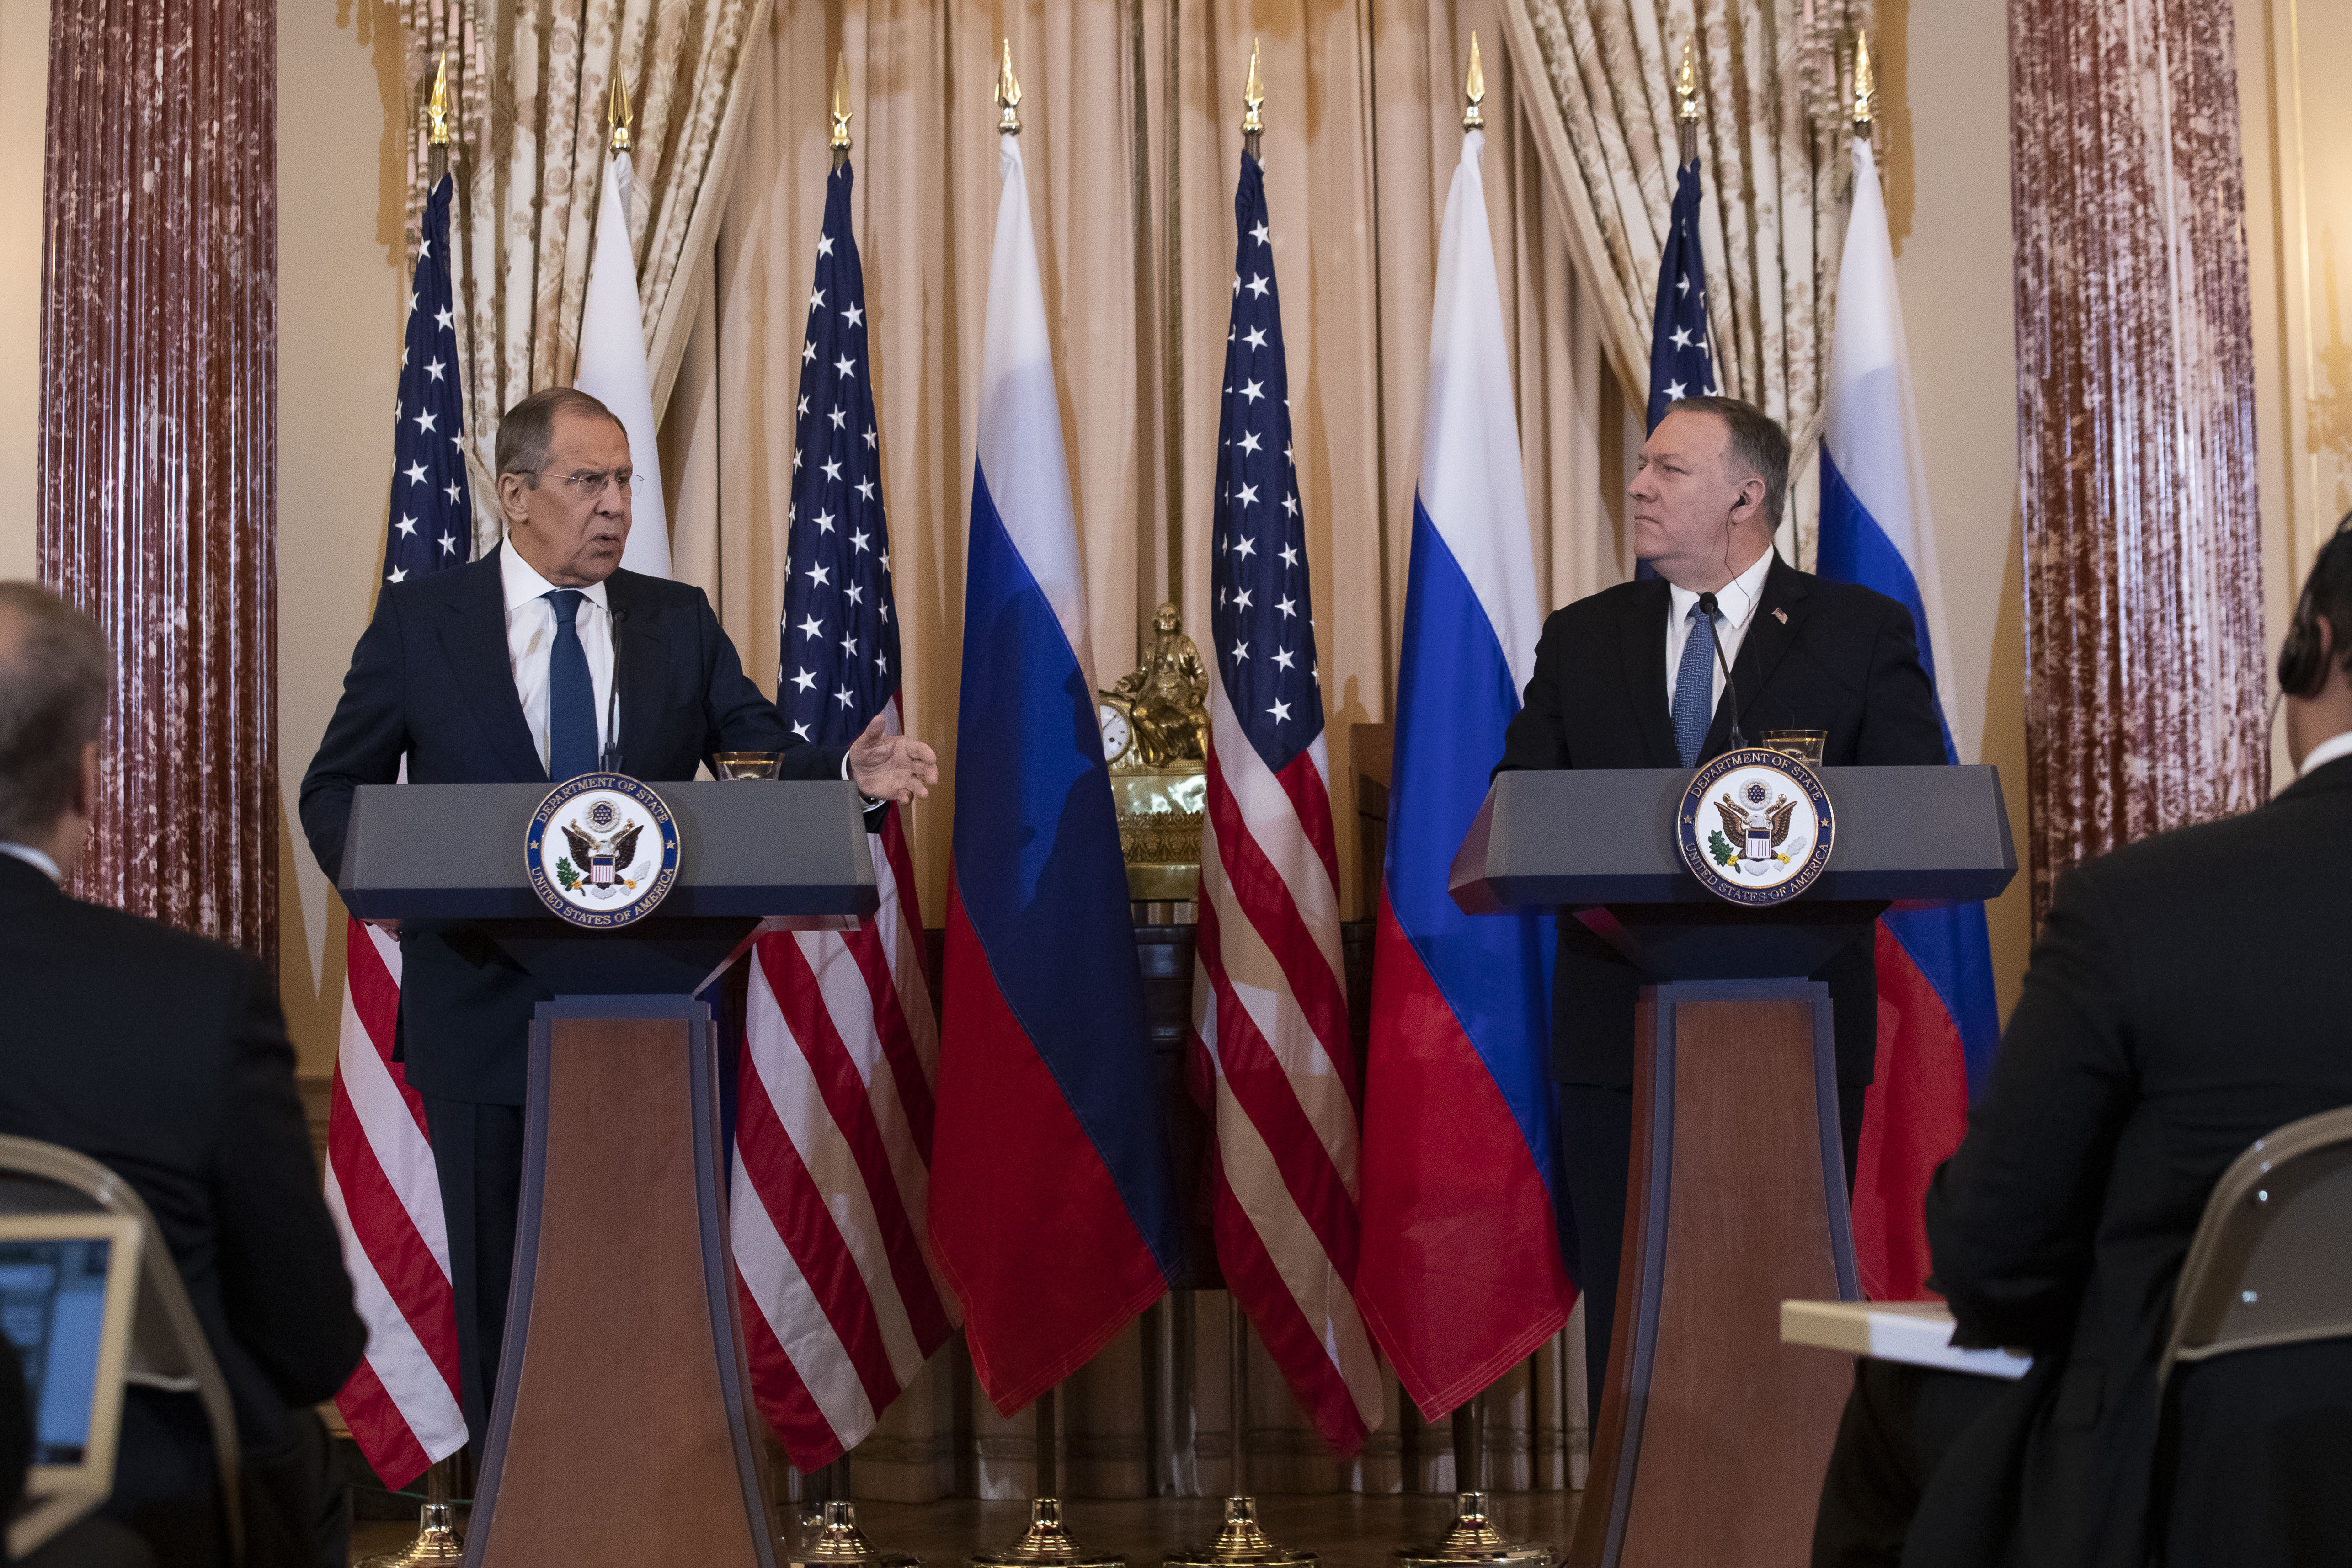 President Trump Met With Russian Foreign Minister Hours After Articles of Impeachment Were Introduced